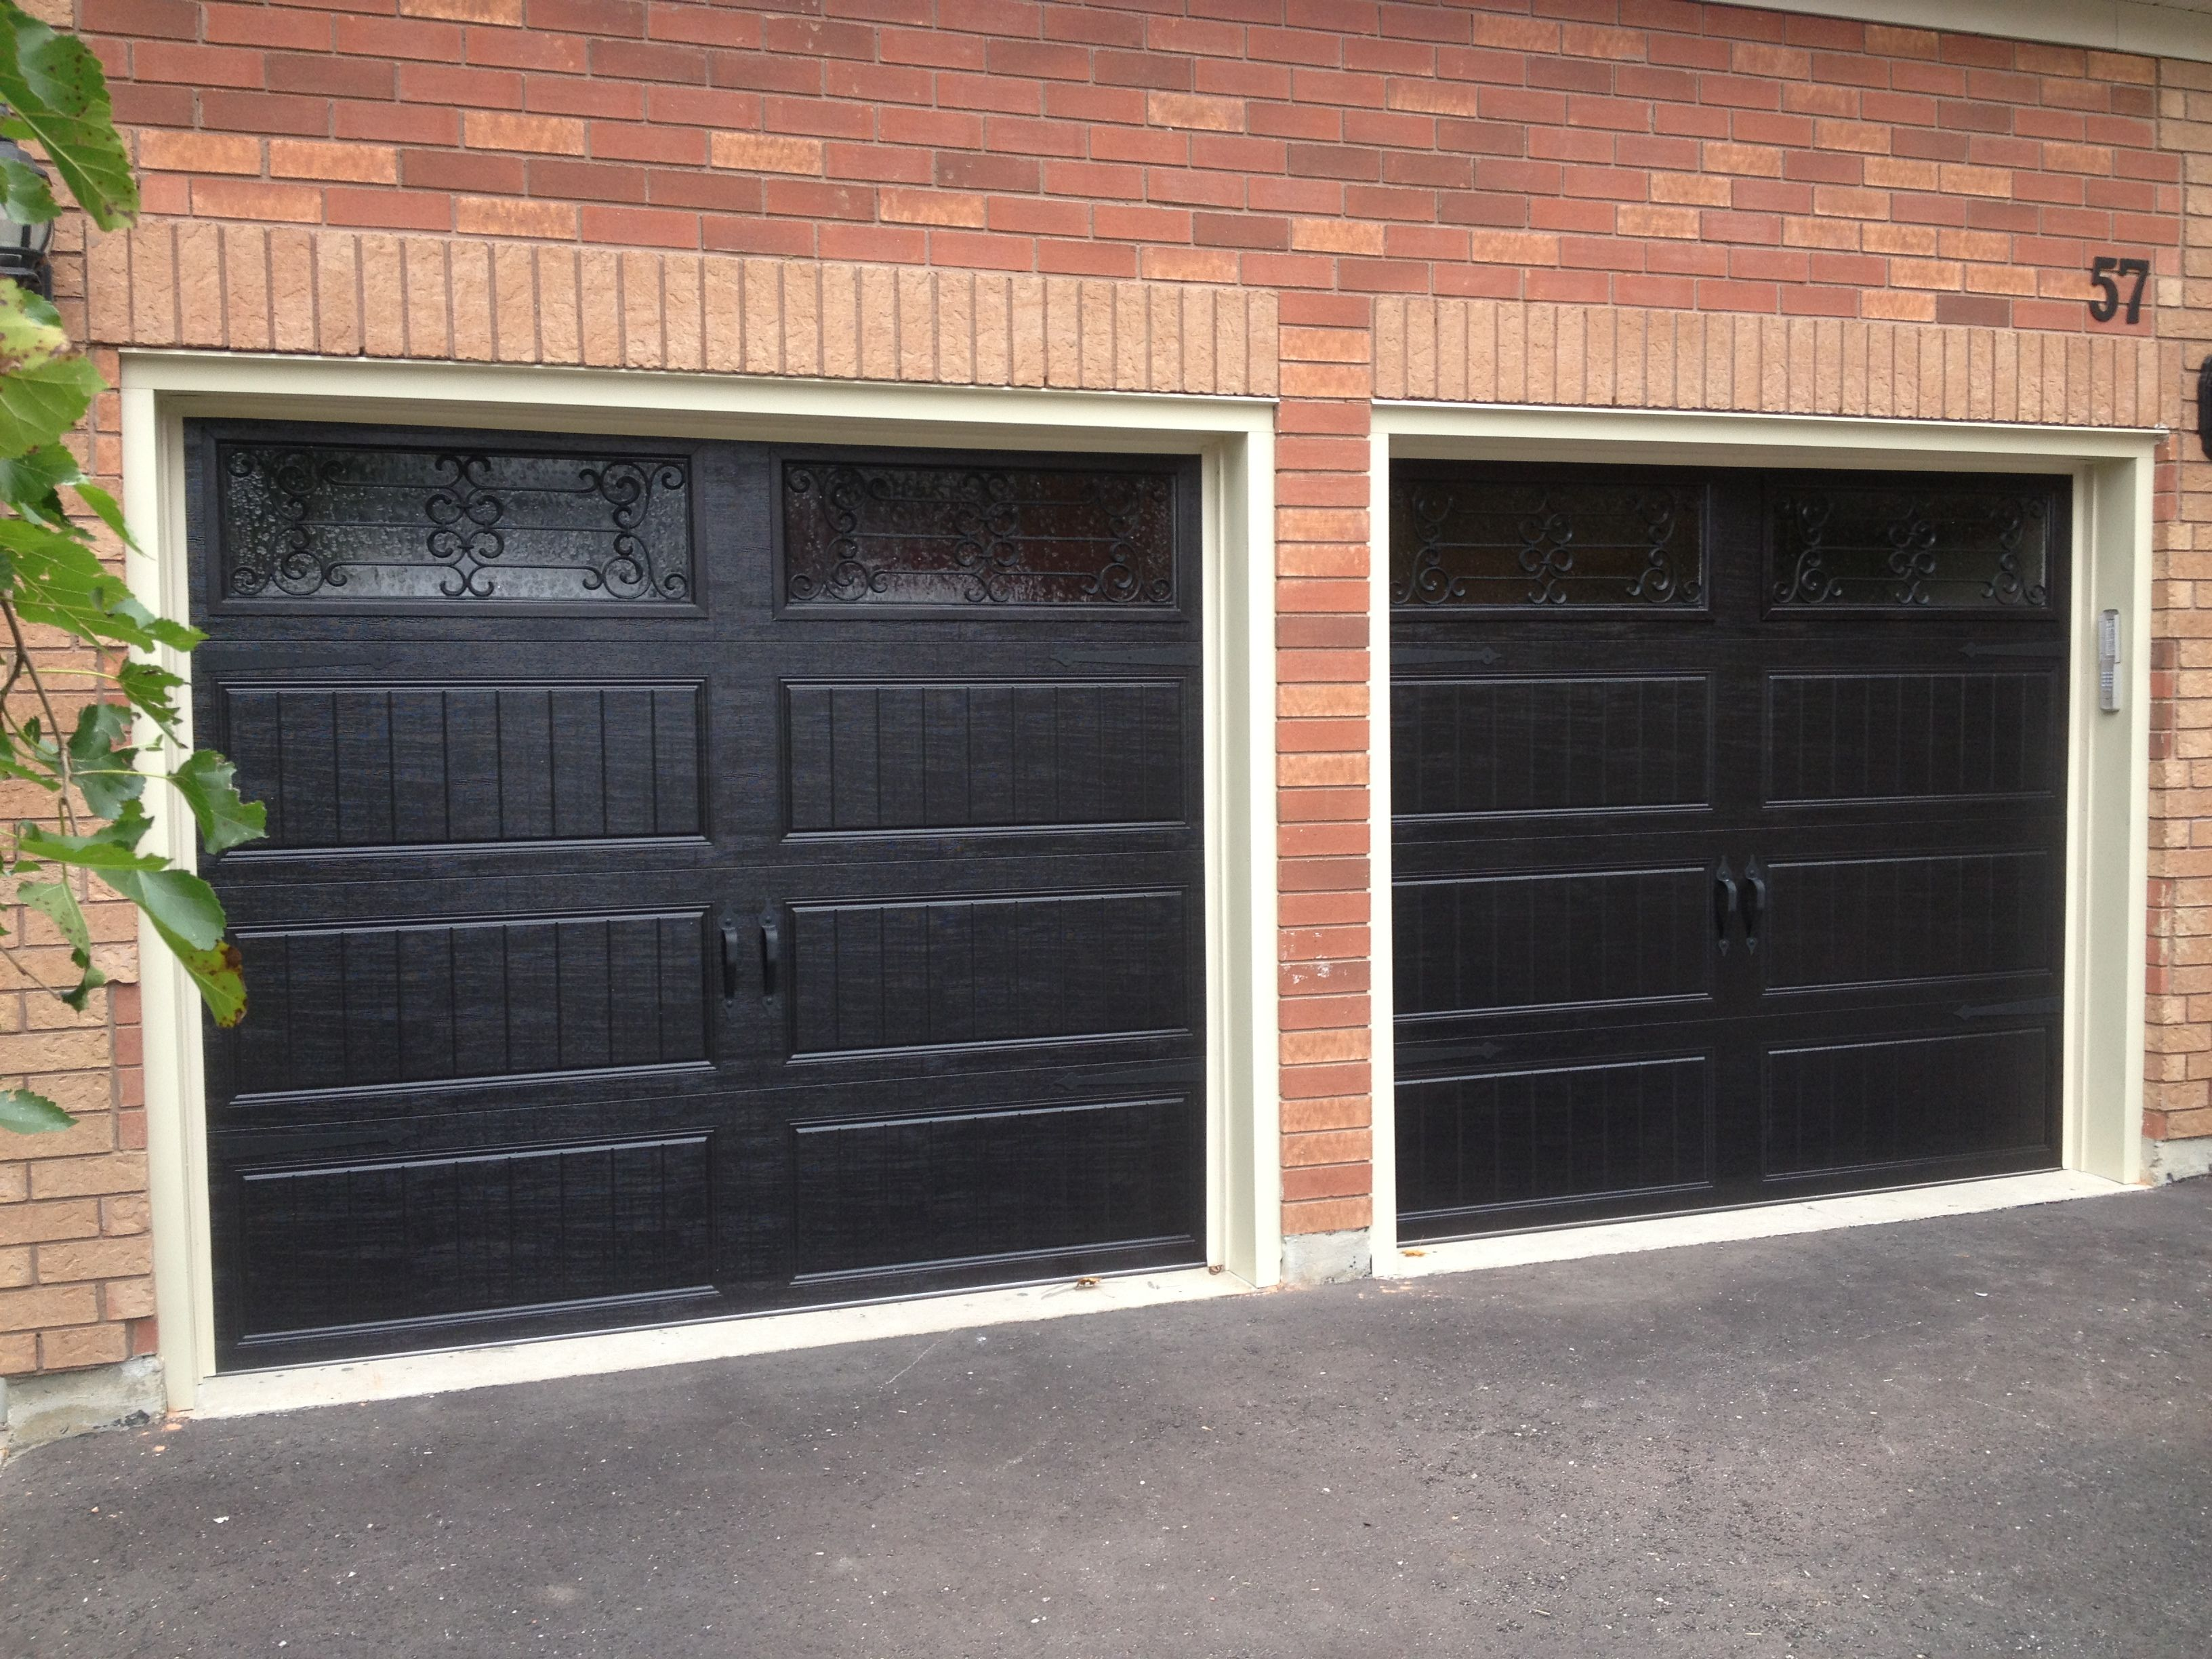 8x7 Clopay Steel Insulated Long Panel Carriage Doors In Black With